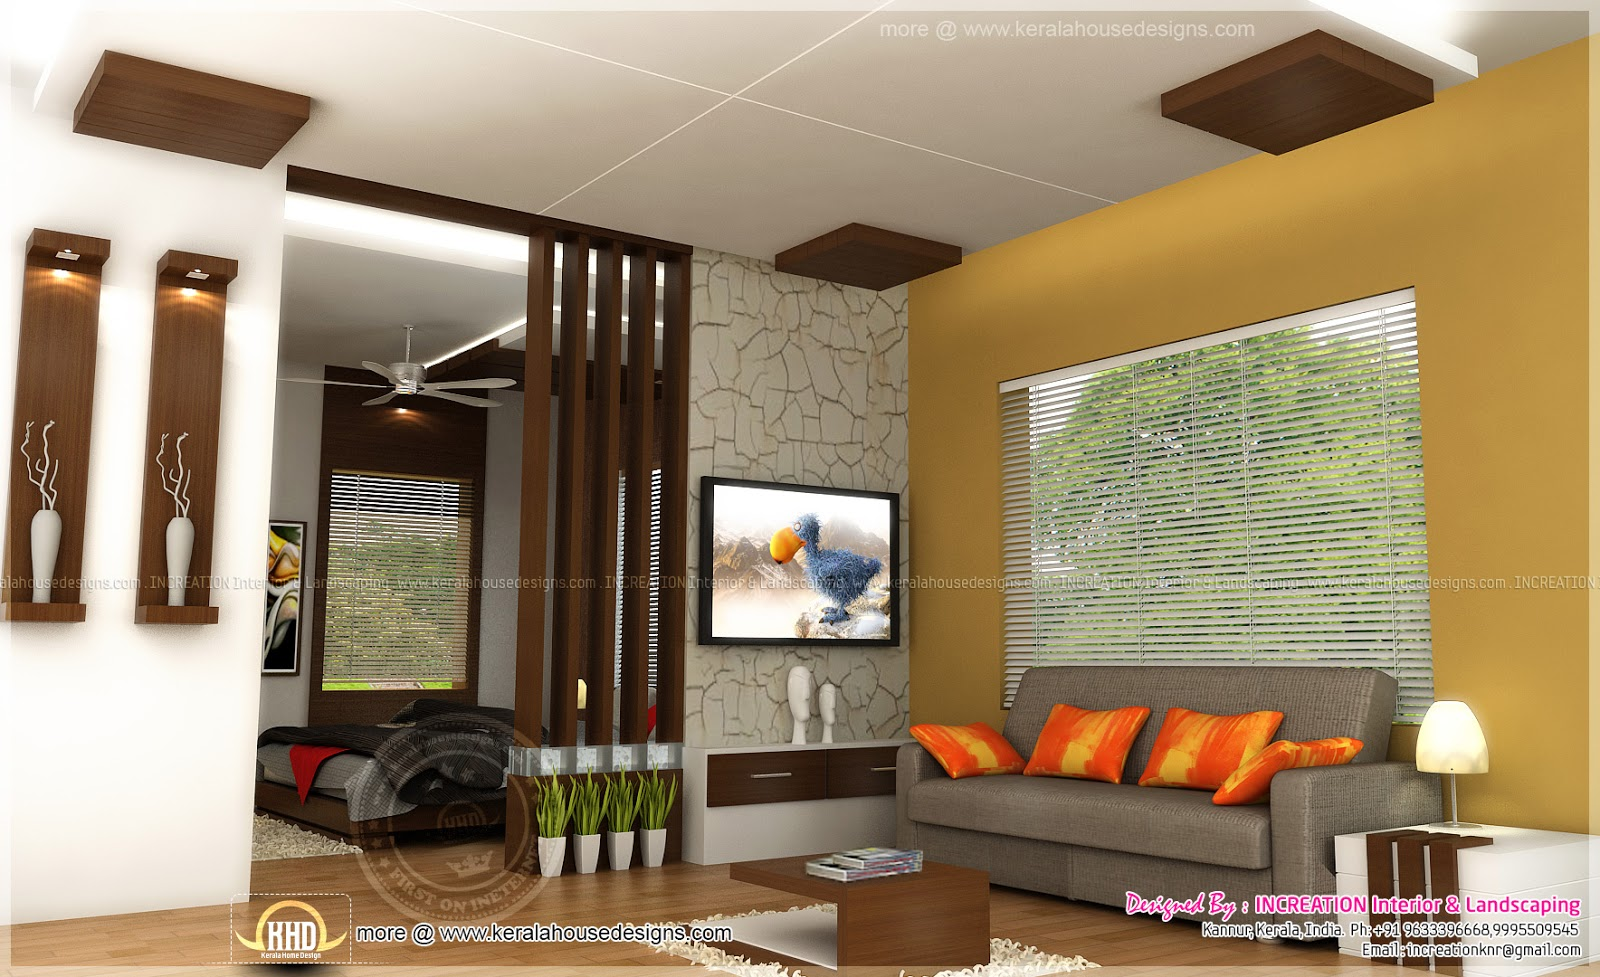 Interior designs from kannur kerala home kerala plans for Home indoor design